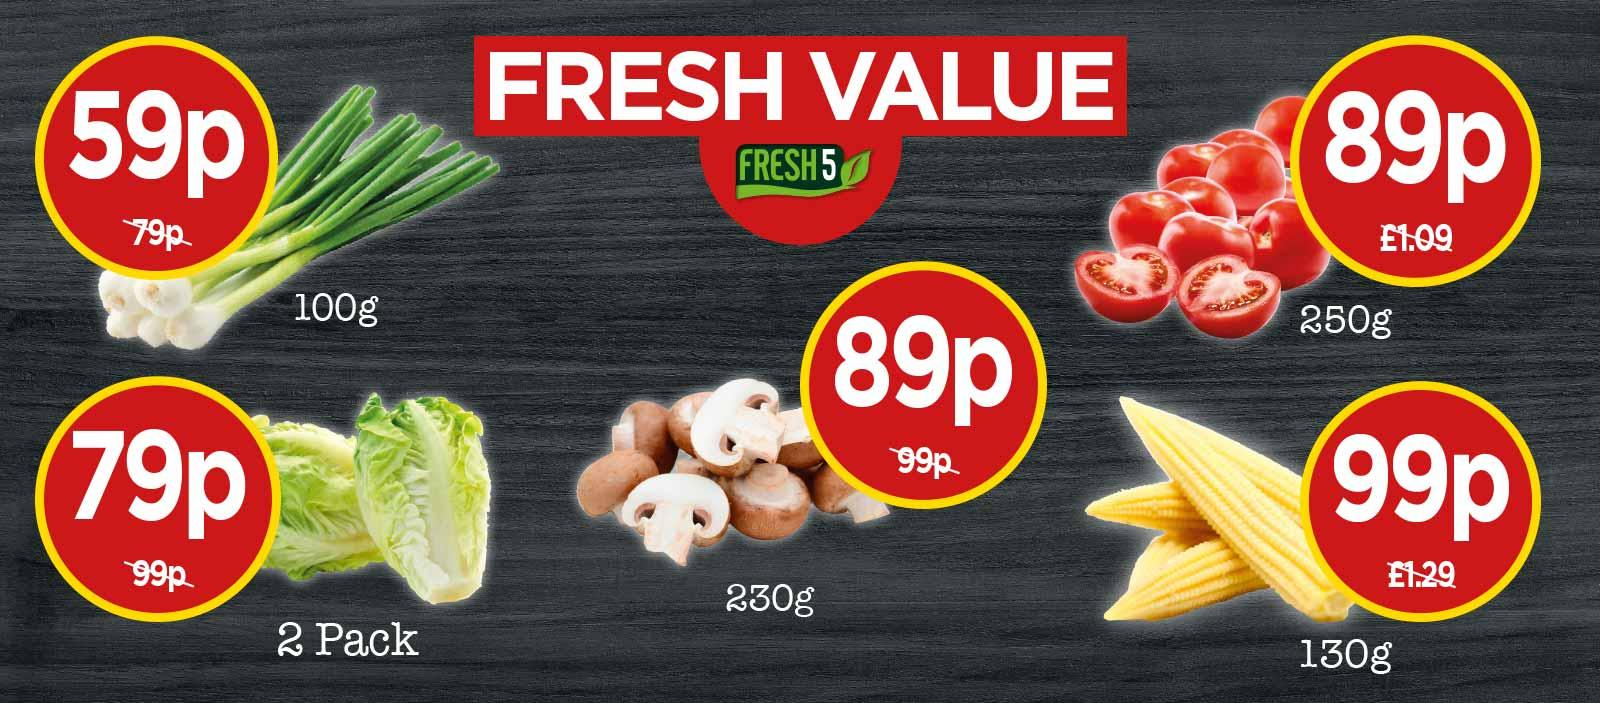 FRESH 5: Farm Fresh Cherry Tomatoes, Chestnut Mushrooms, Little Gem Lettuce, Spring Onions, Fine Green Beans - Fresh Value at Budgens